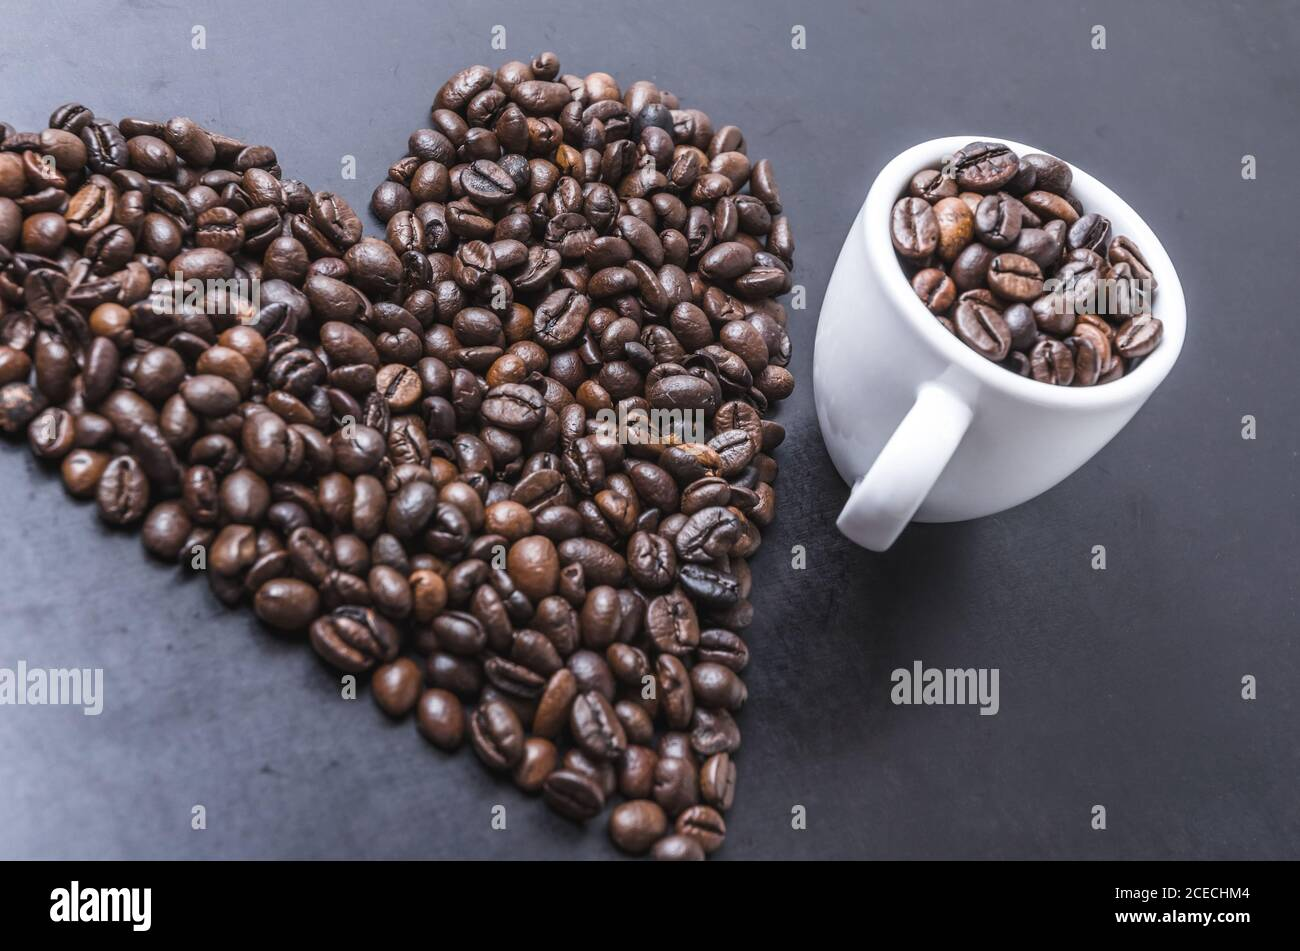 Coffee beans with cup on dark background, heart shaped, close-up still life, flat lay, indoors studio, I love coffee concept Stock Photo